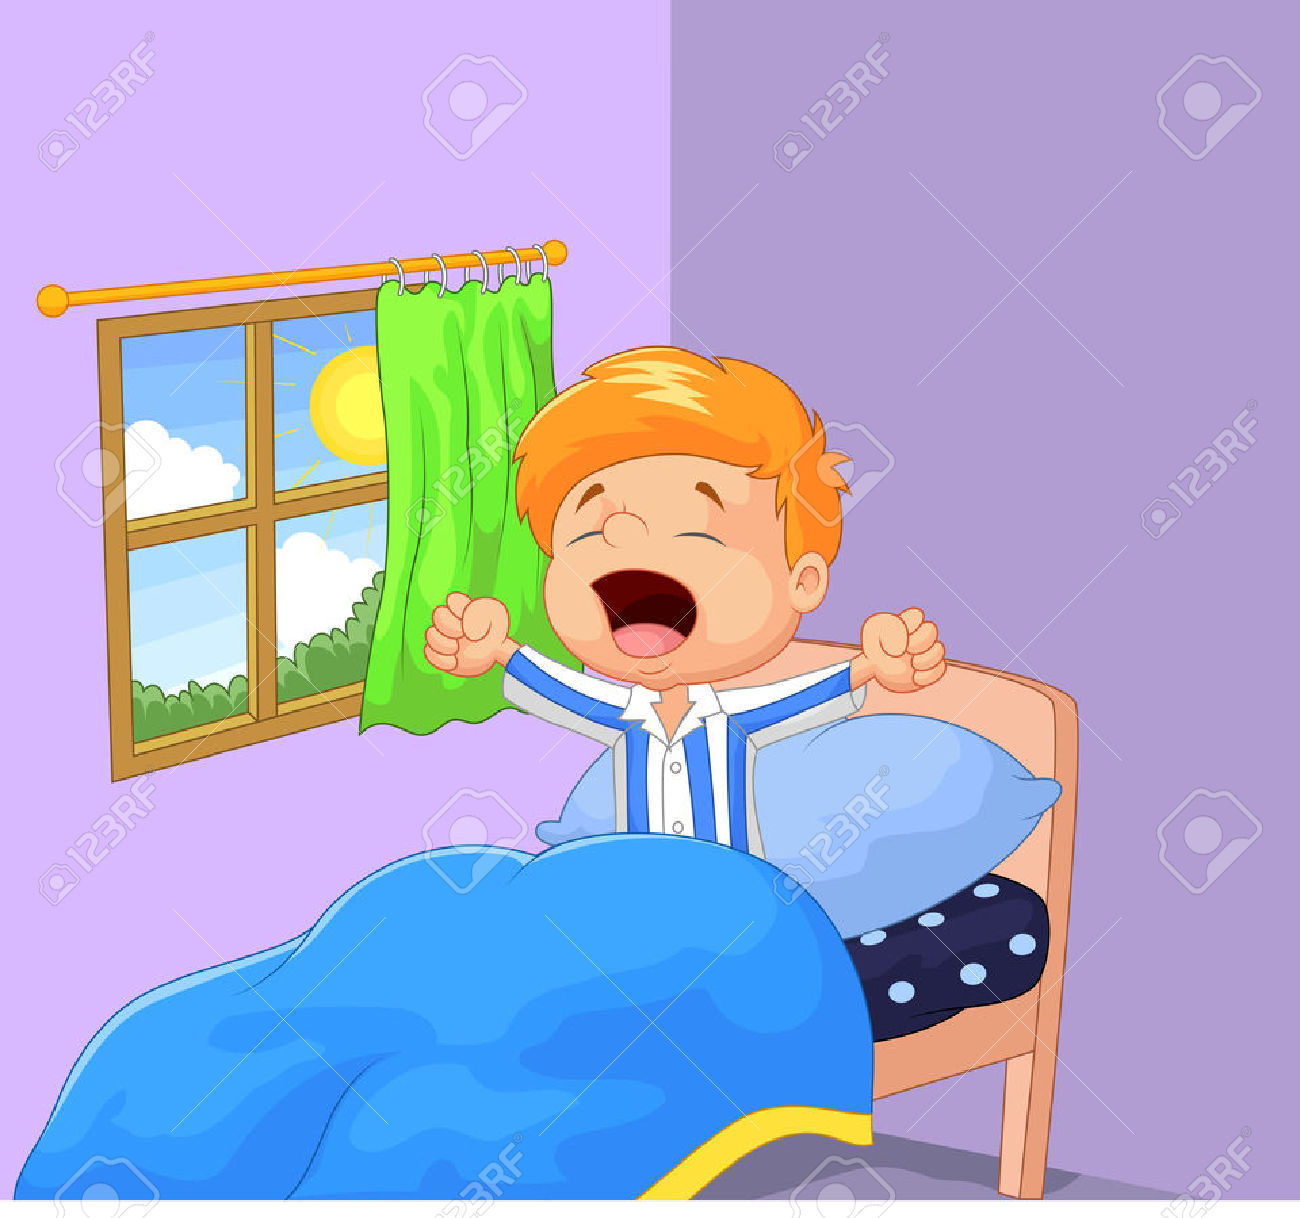 Kids waking up clipart.